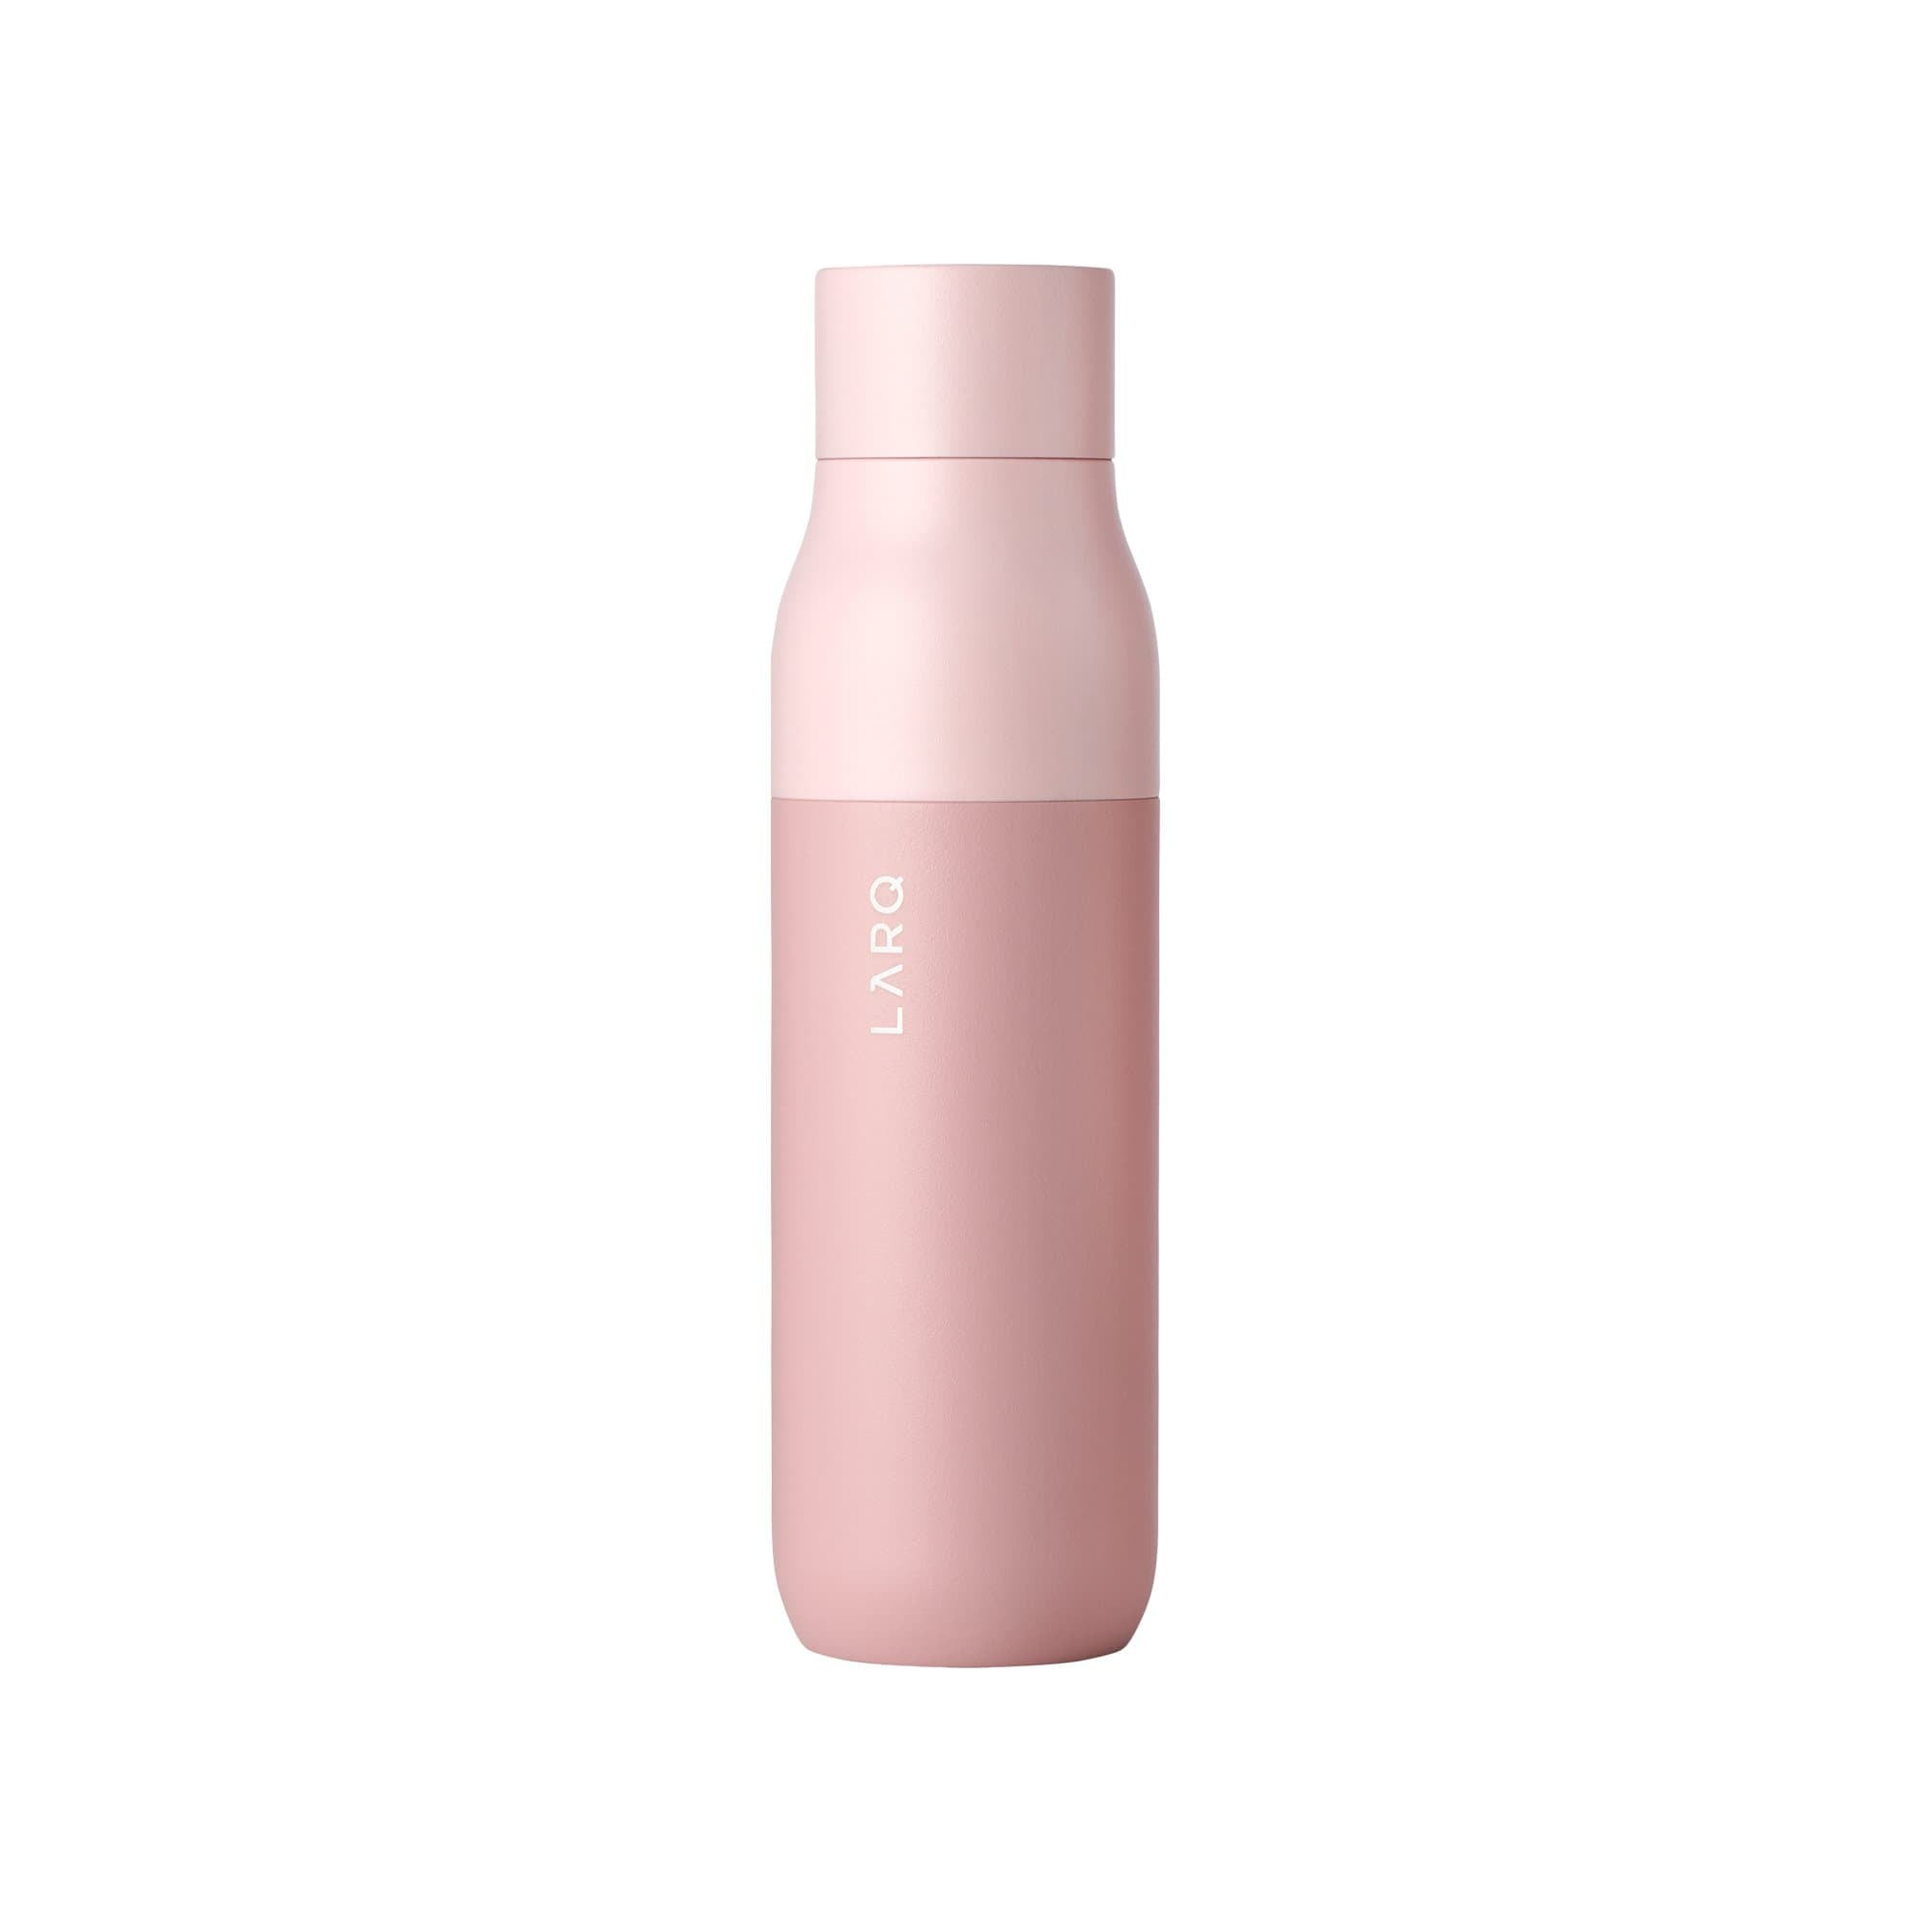 LARQ Water Bottles Himalayan Pink Bottle